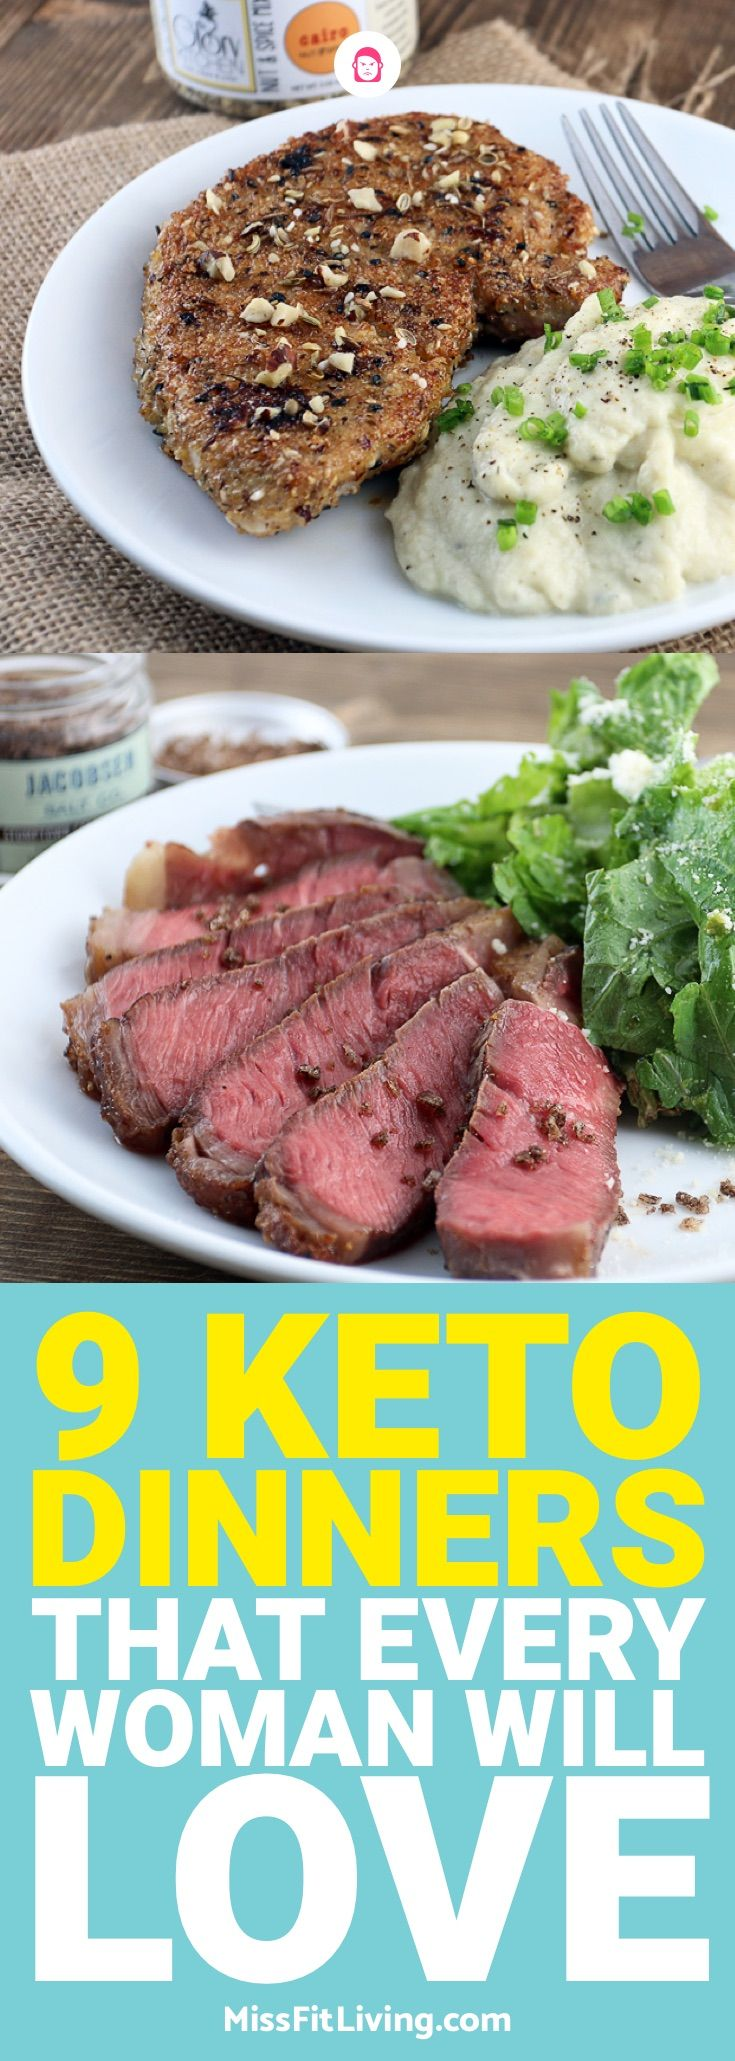 Hoping to lose weight with keto? Then you need to make sure you are eating the right meals. These 9 keto dinners will put you on the right path.